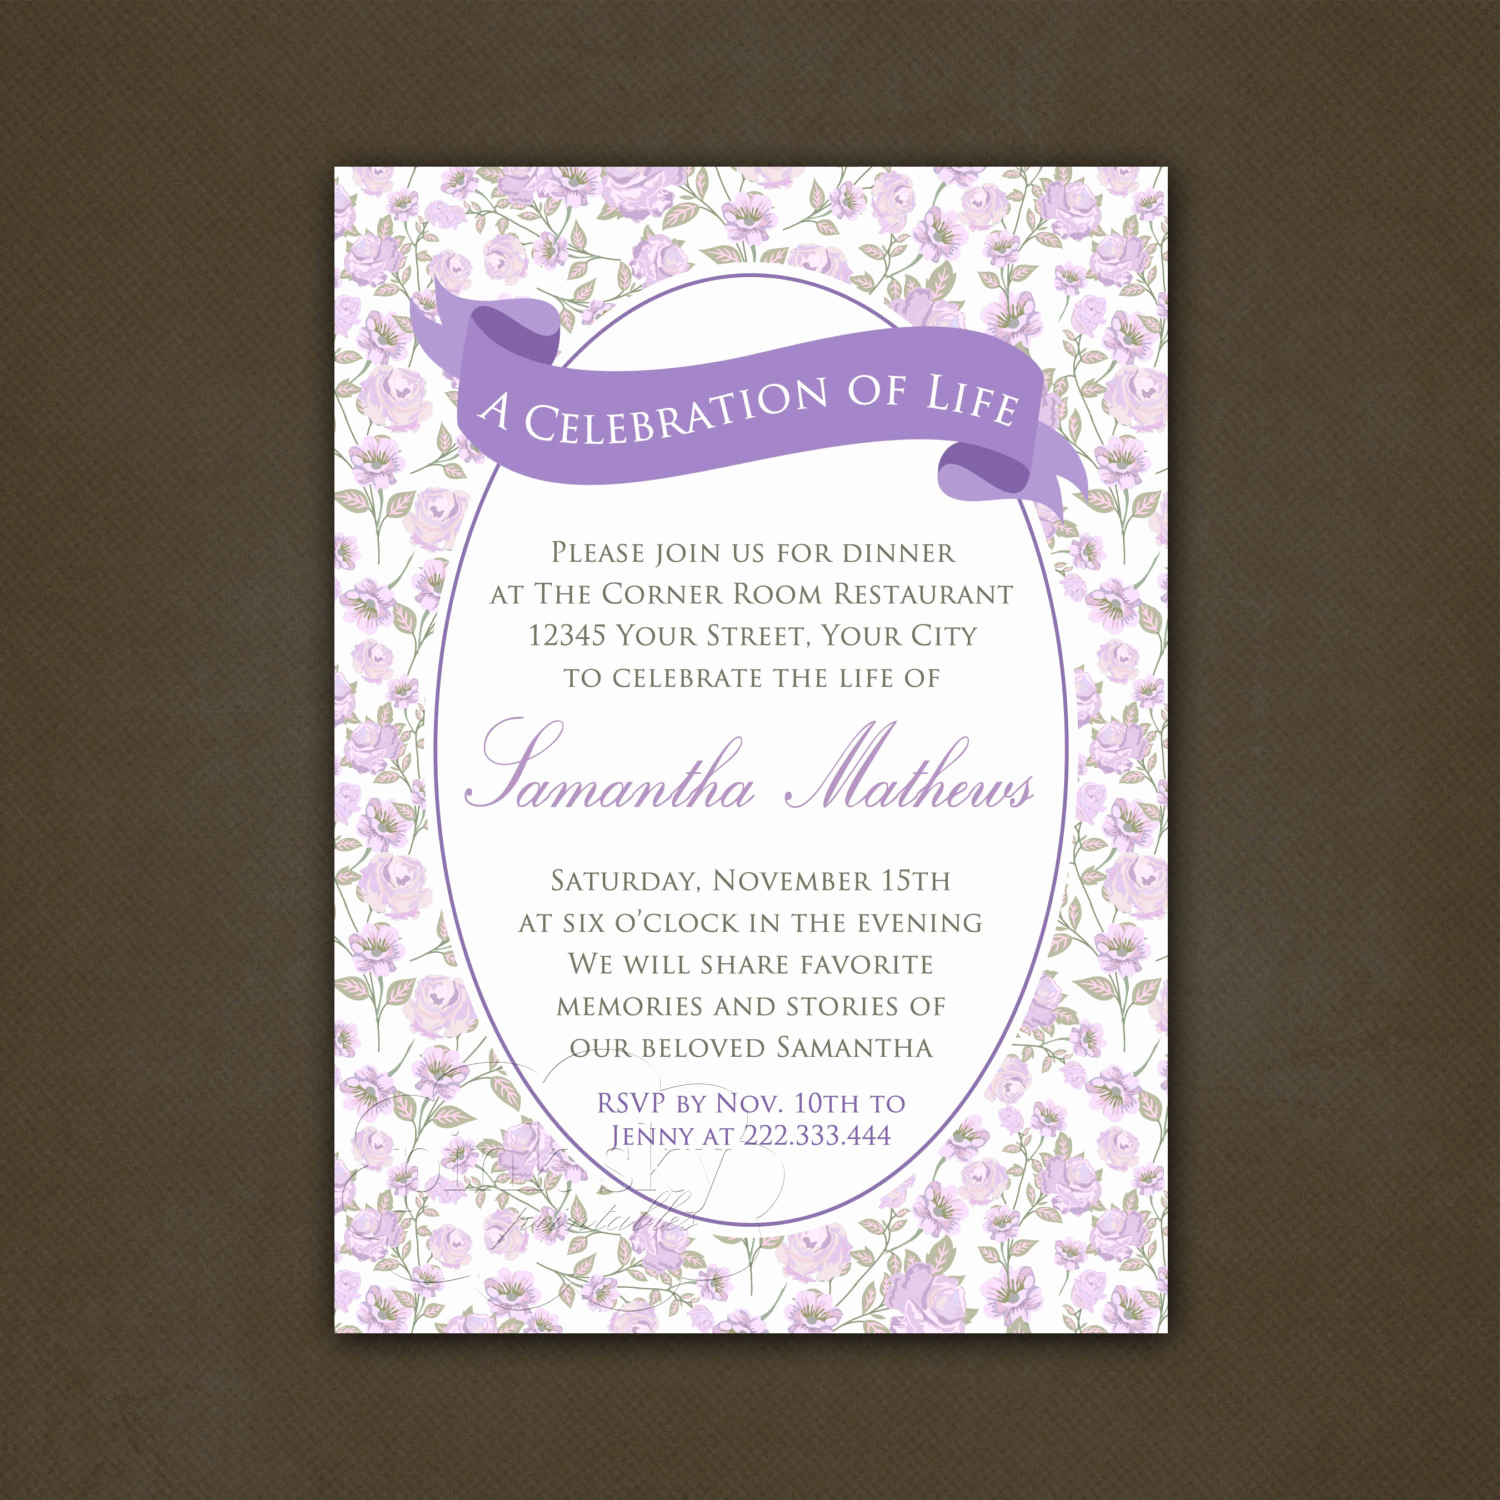 Celebration Of Life Invitation Wording Inspirational Printable Celebration Of Life Invitation Floral Lavender